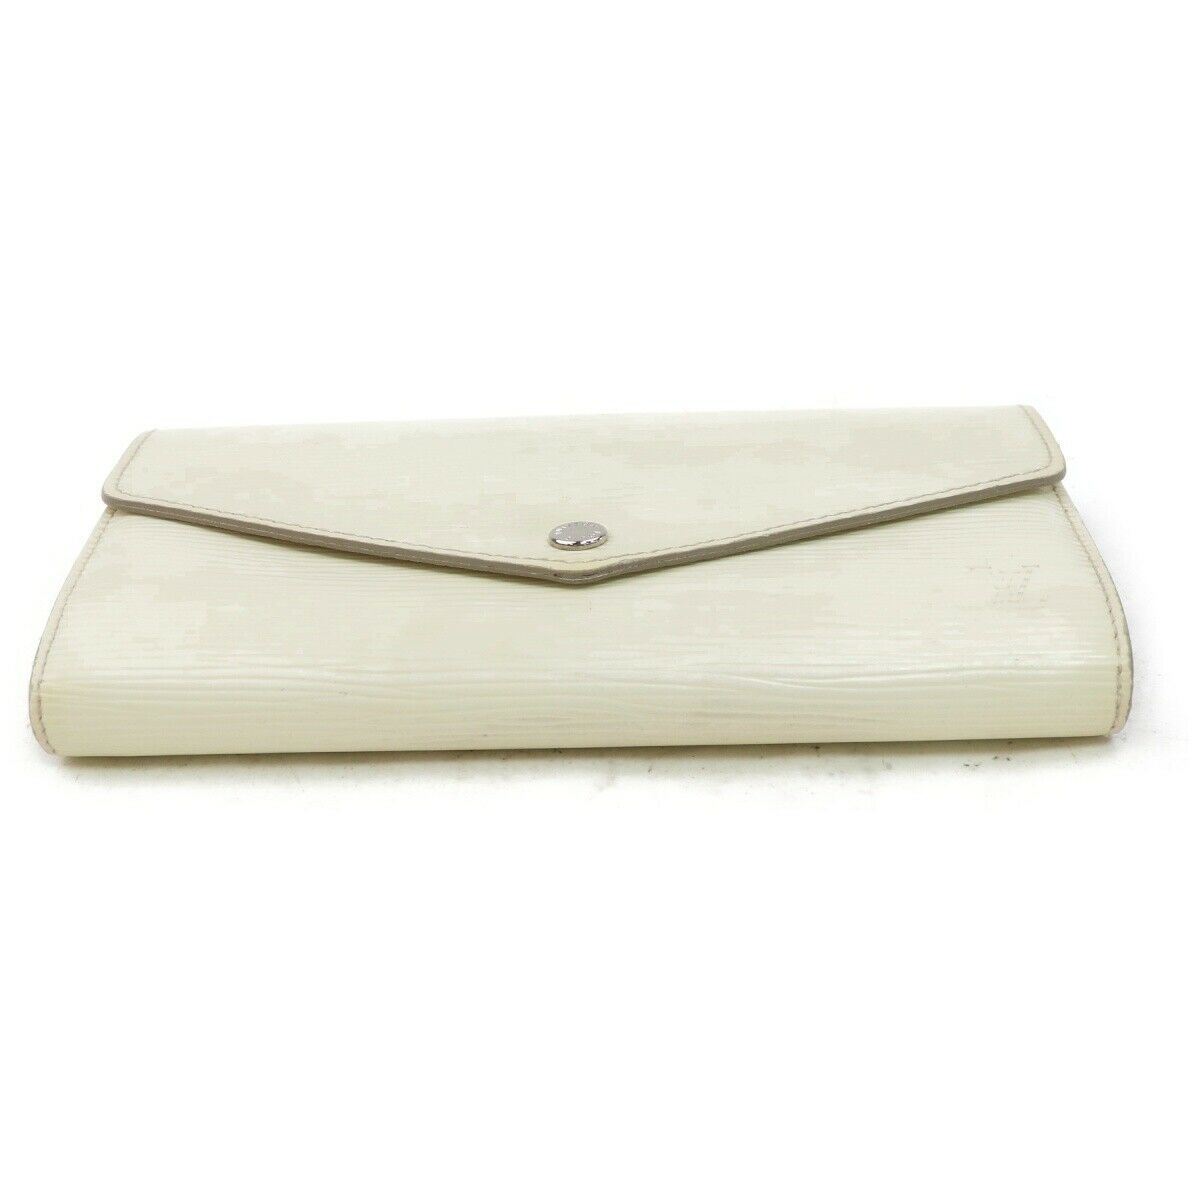 Louis Vuitton Portefeuille Sarah M6057J White Epi Long Wallet 11477